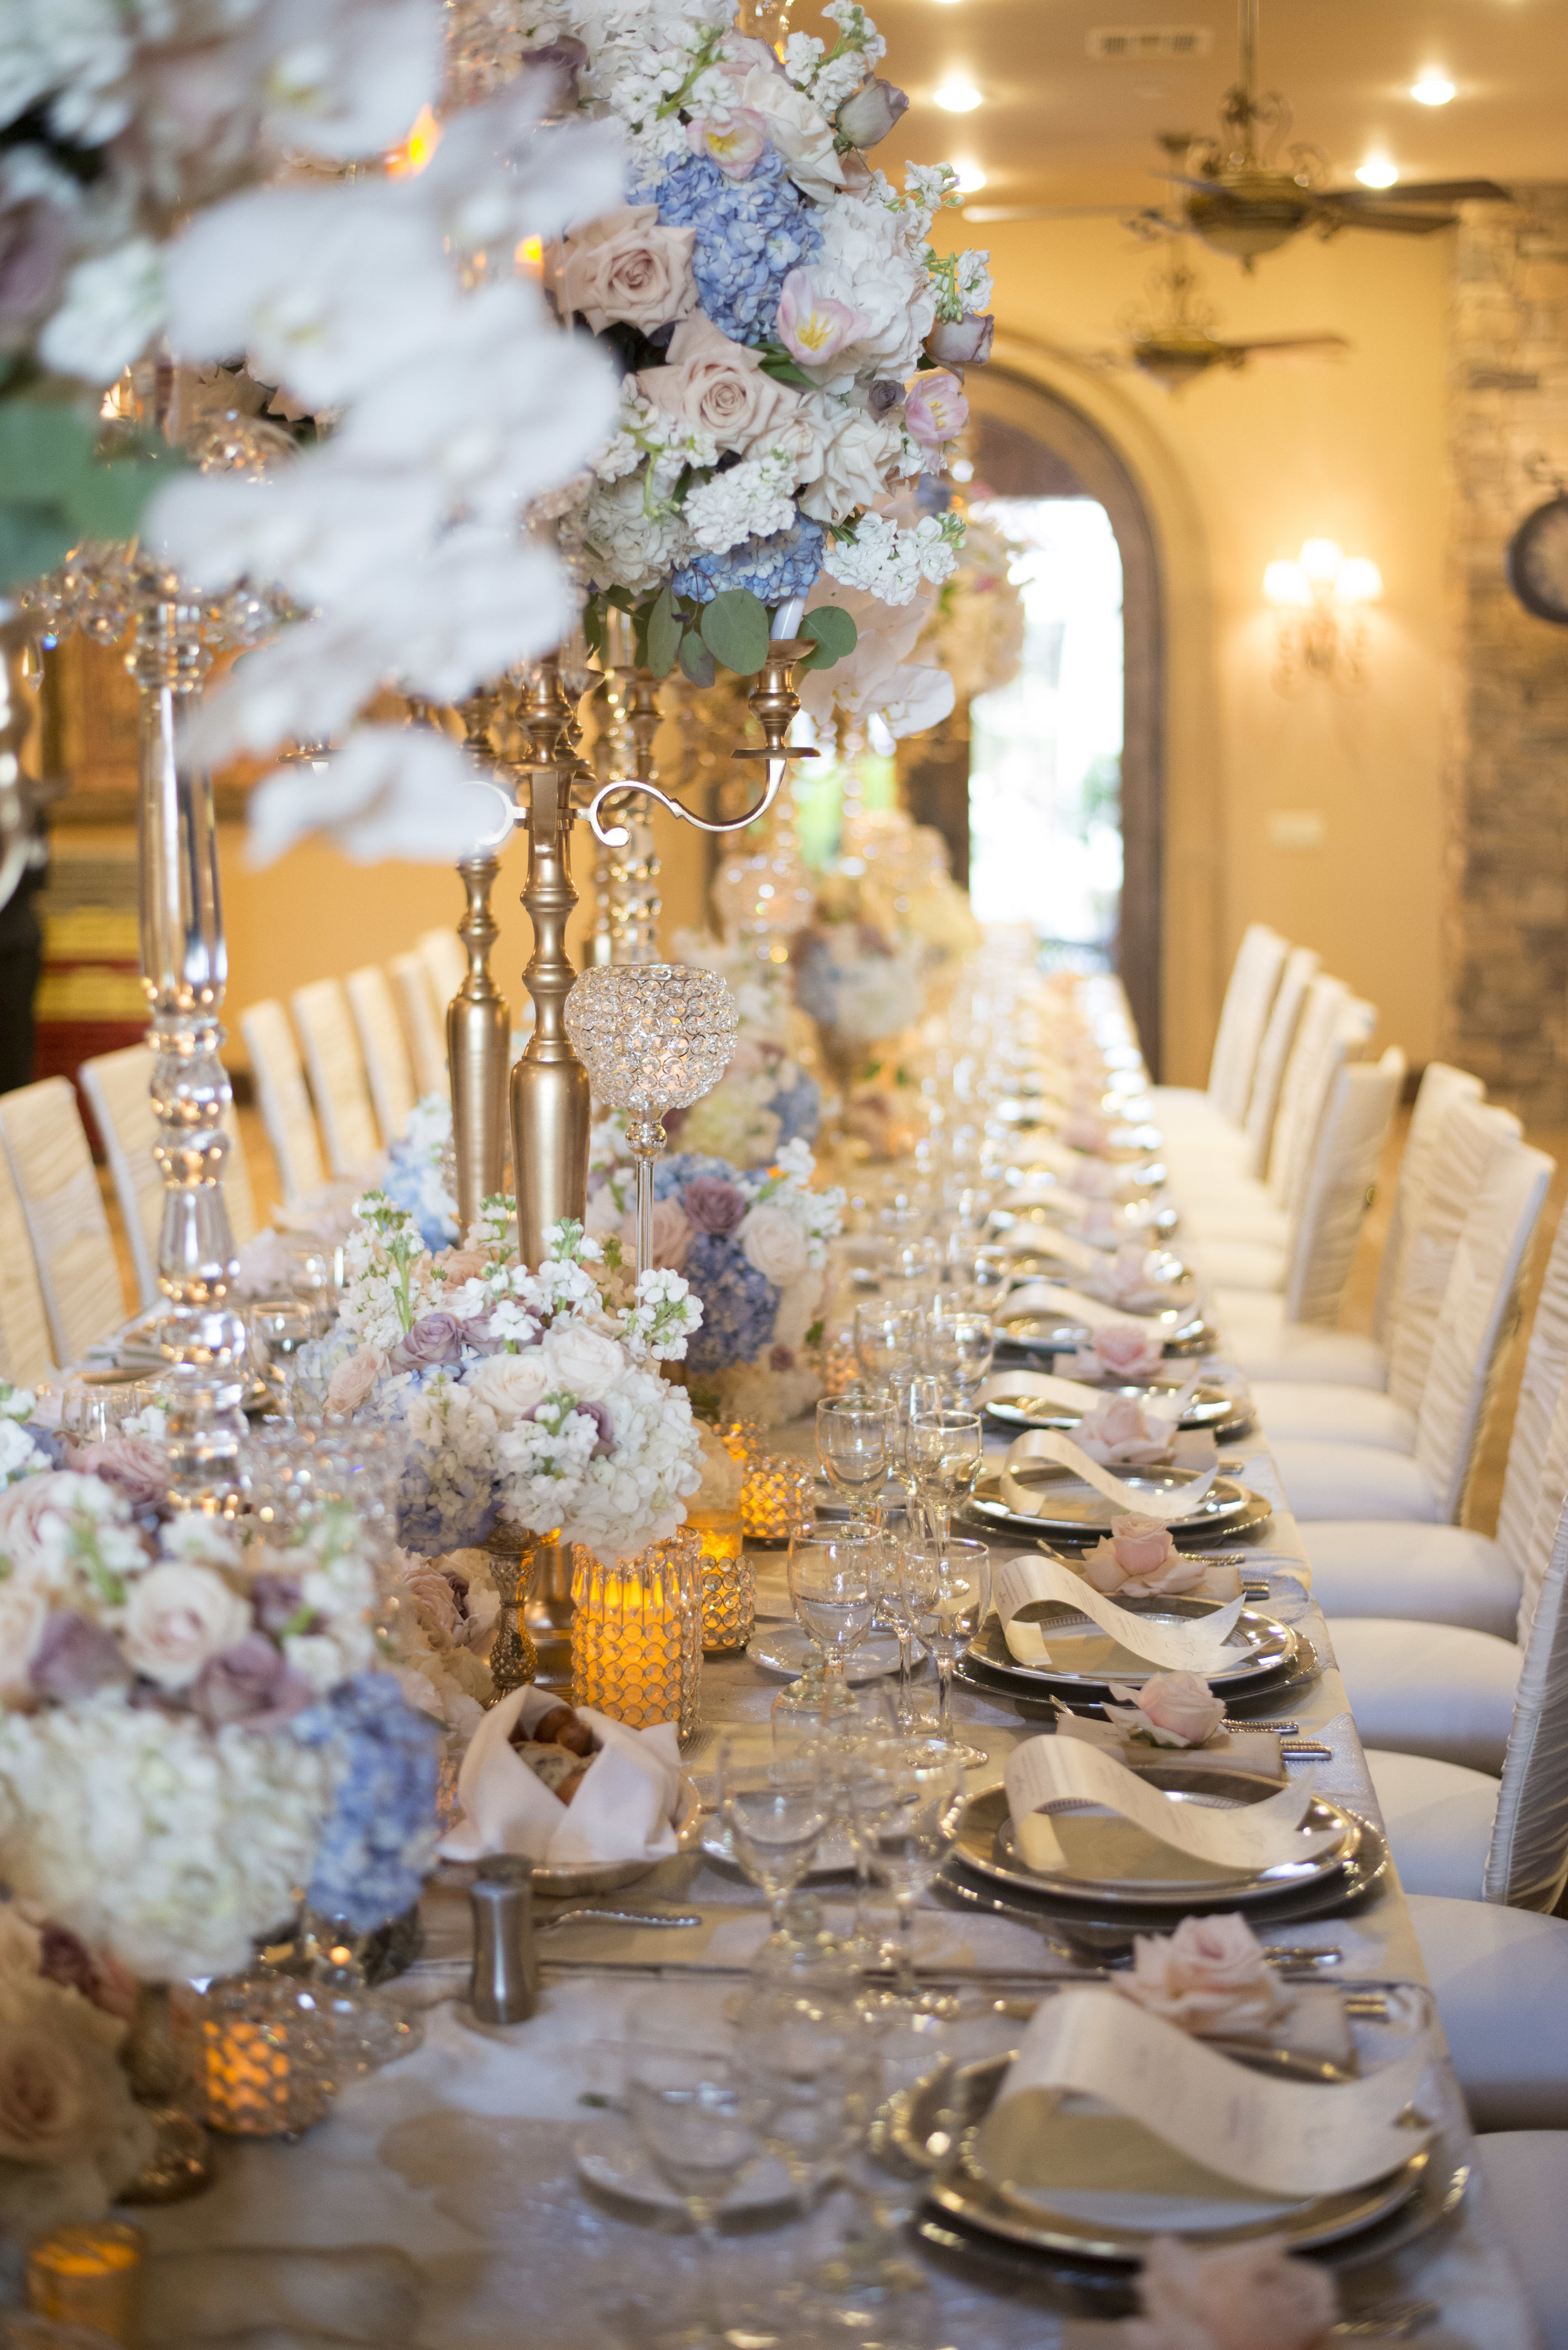 Long banquet table wit tall centerpieces and elaborate place settings in blue and pink. Luxury Las Vegas Wedding Planner Andrea Eppolito. Image by AltF Photography.